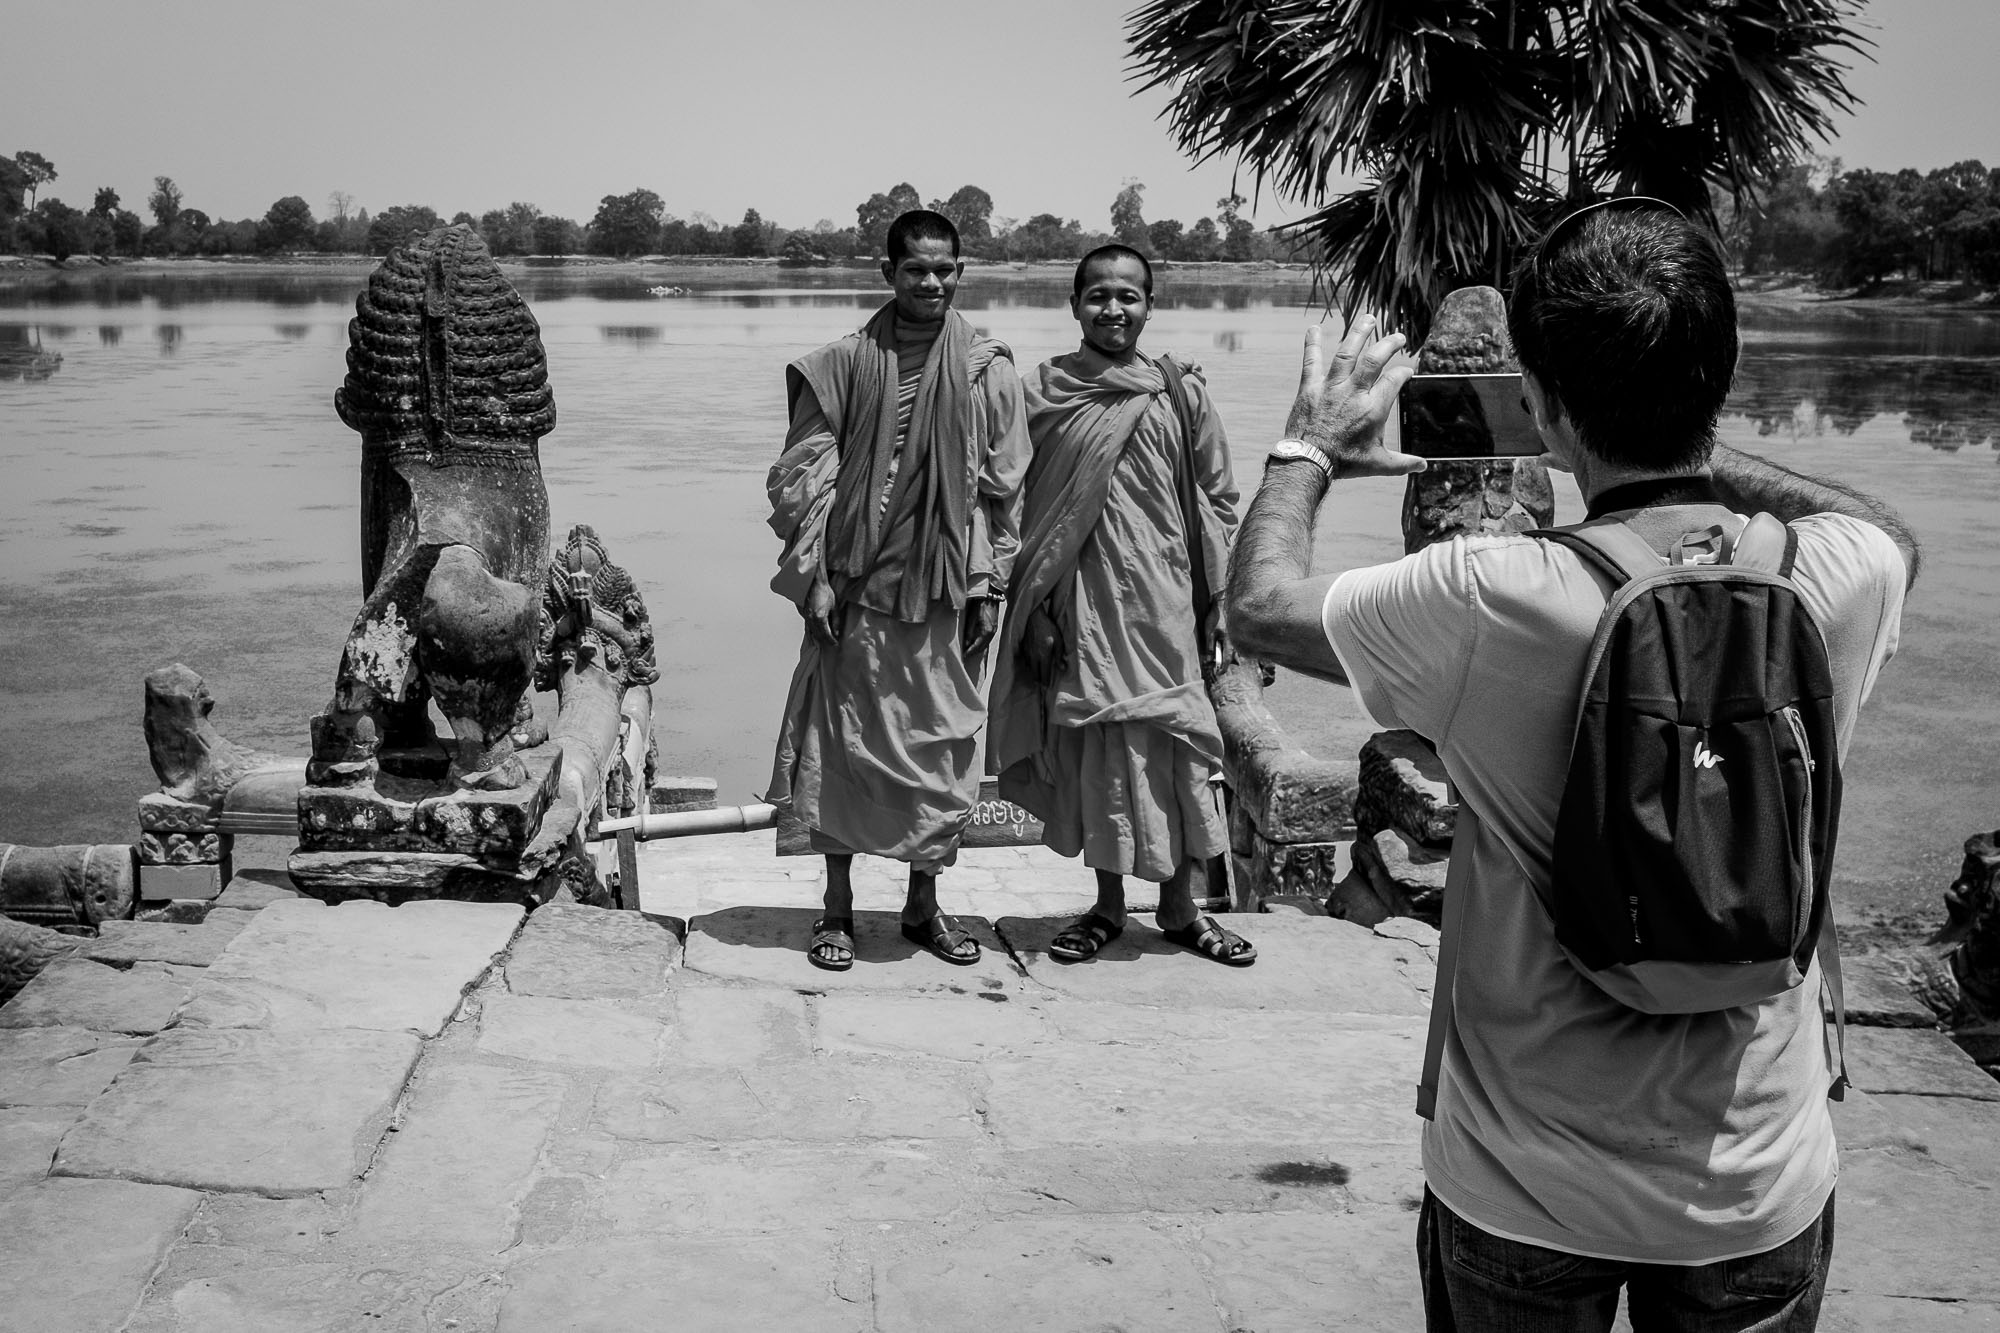 Two monks getting their picture taken at a temple in Angkor Wat